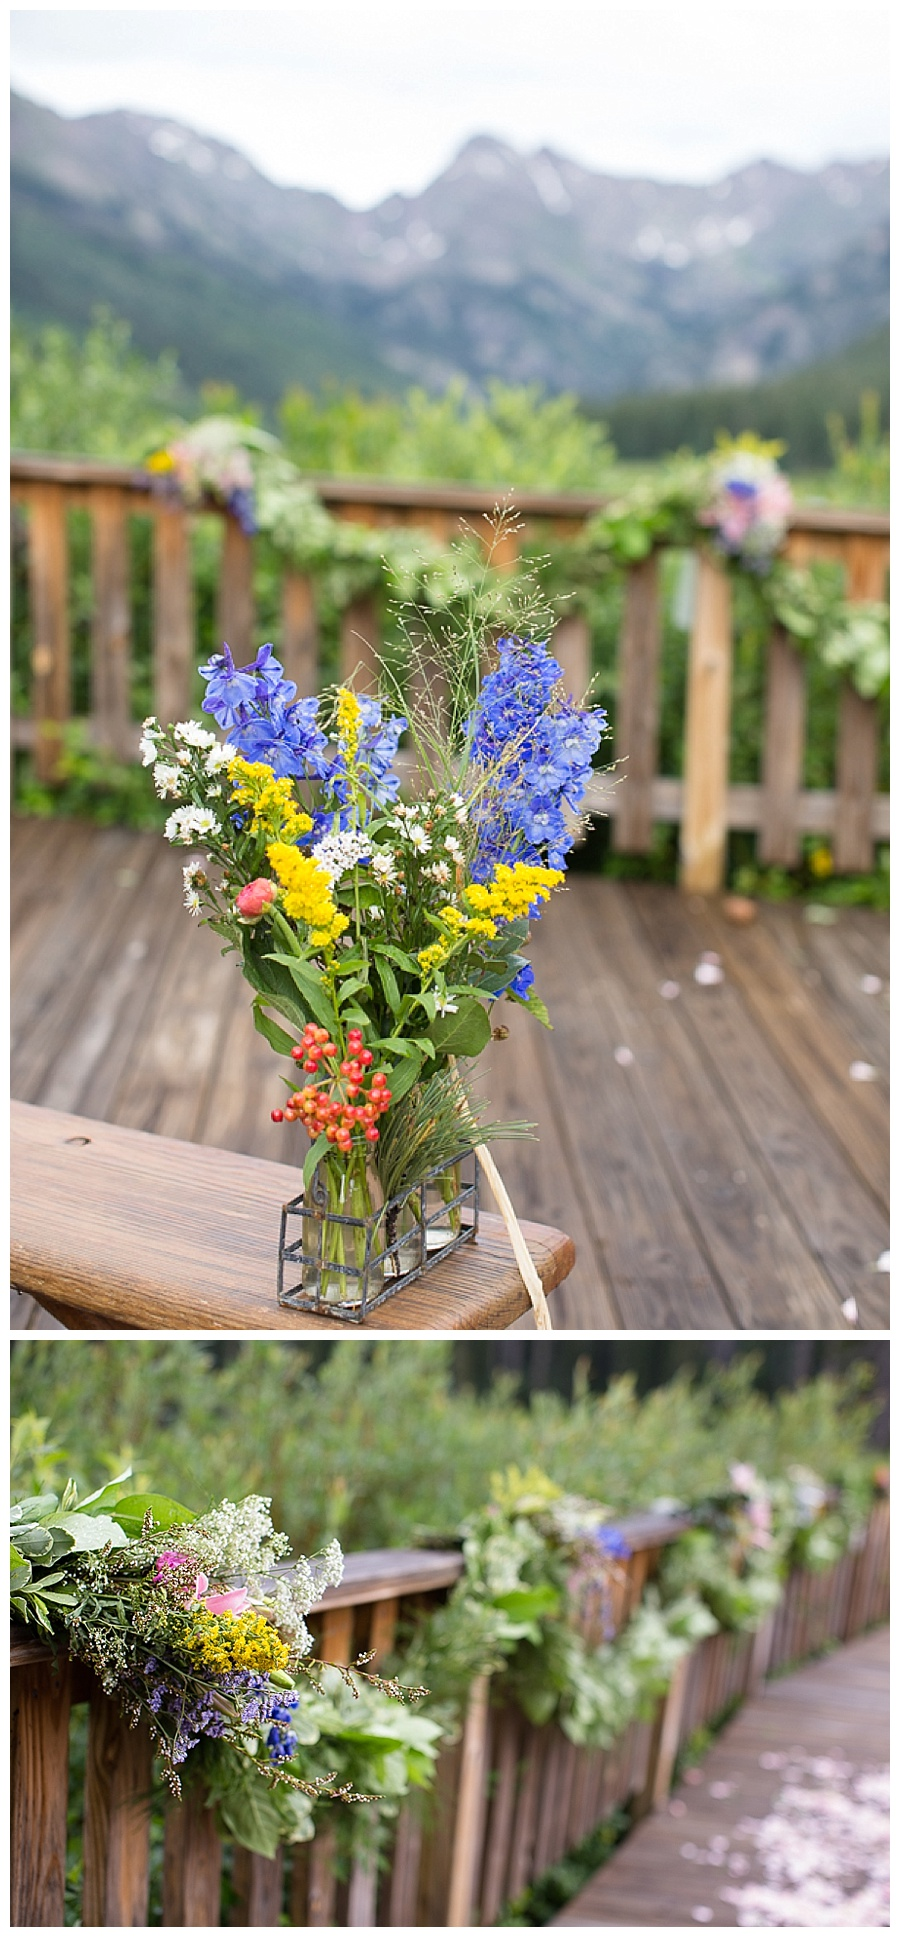 03 Flowers at Piney River Ranch Ceremony Site